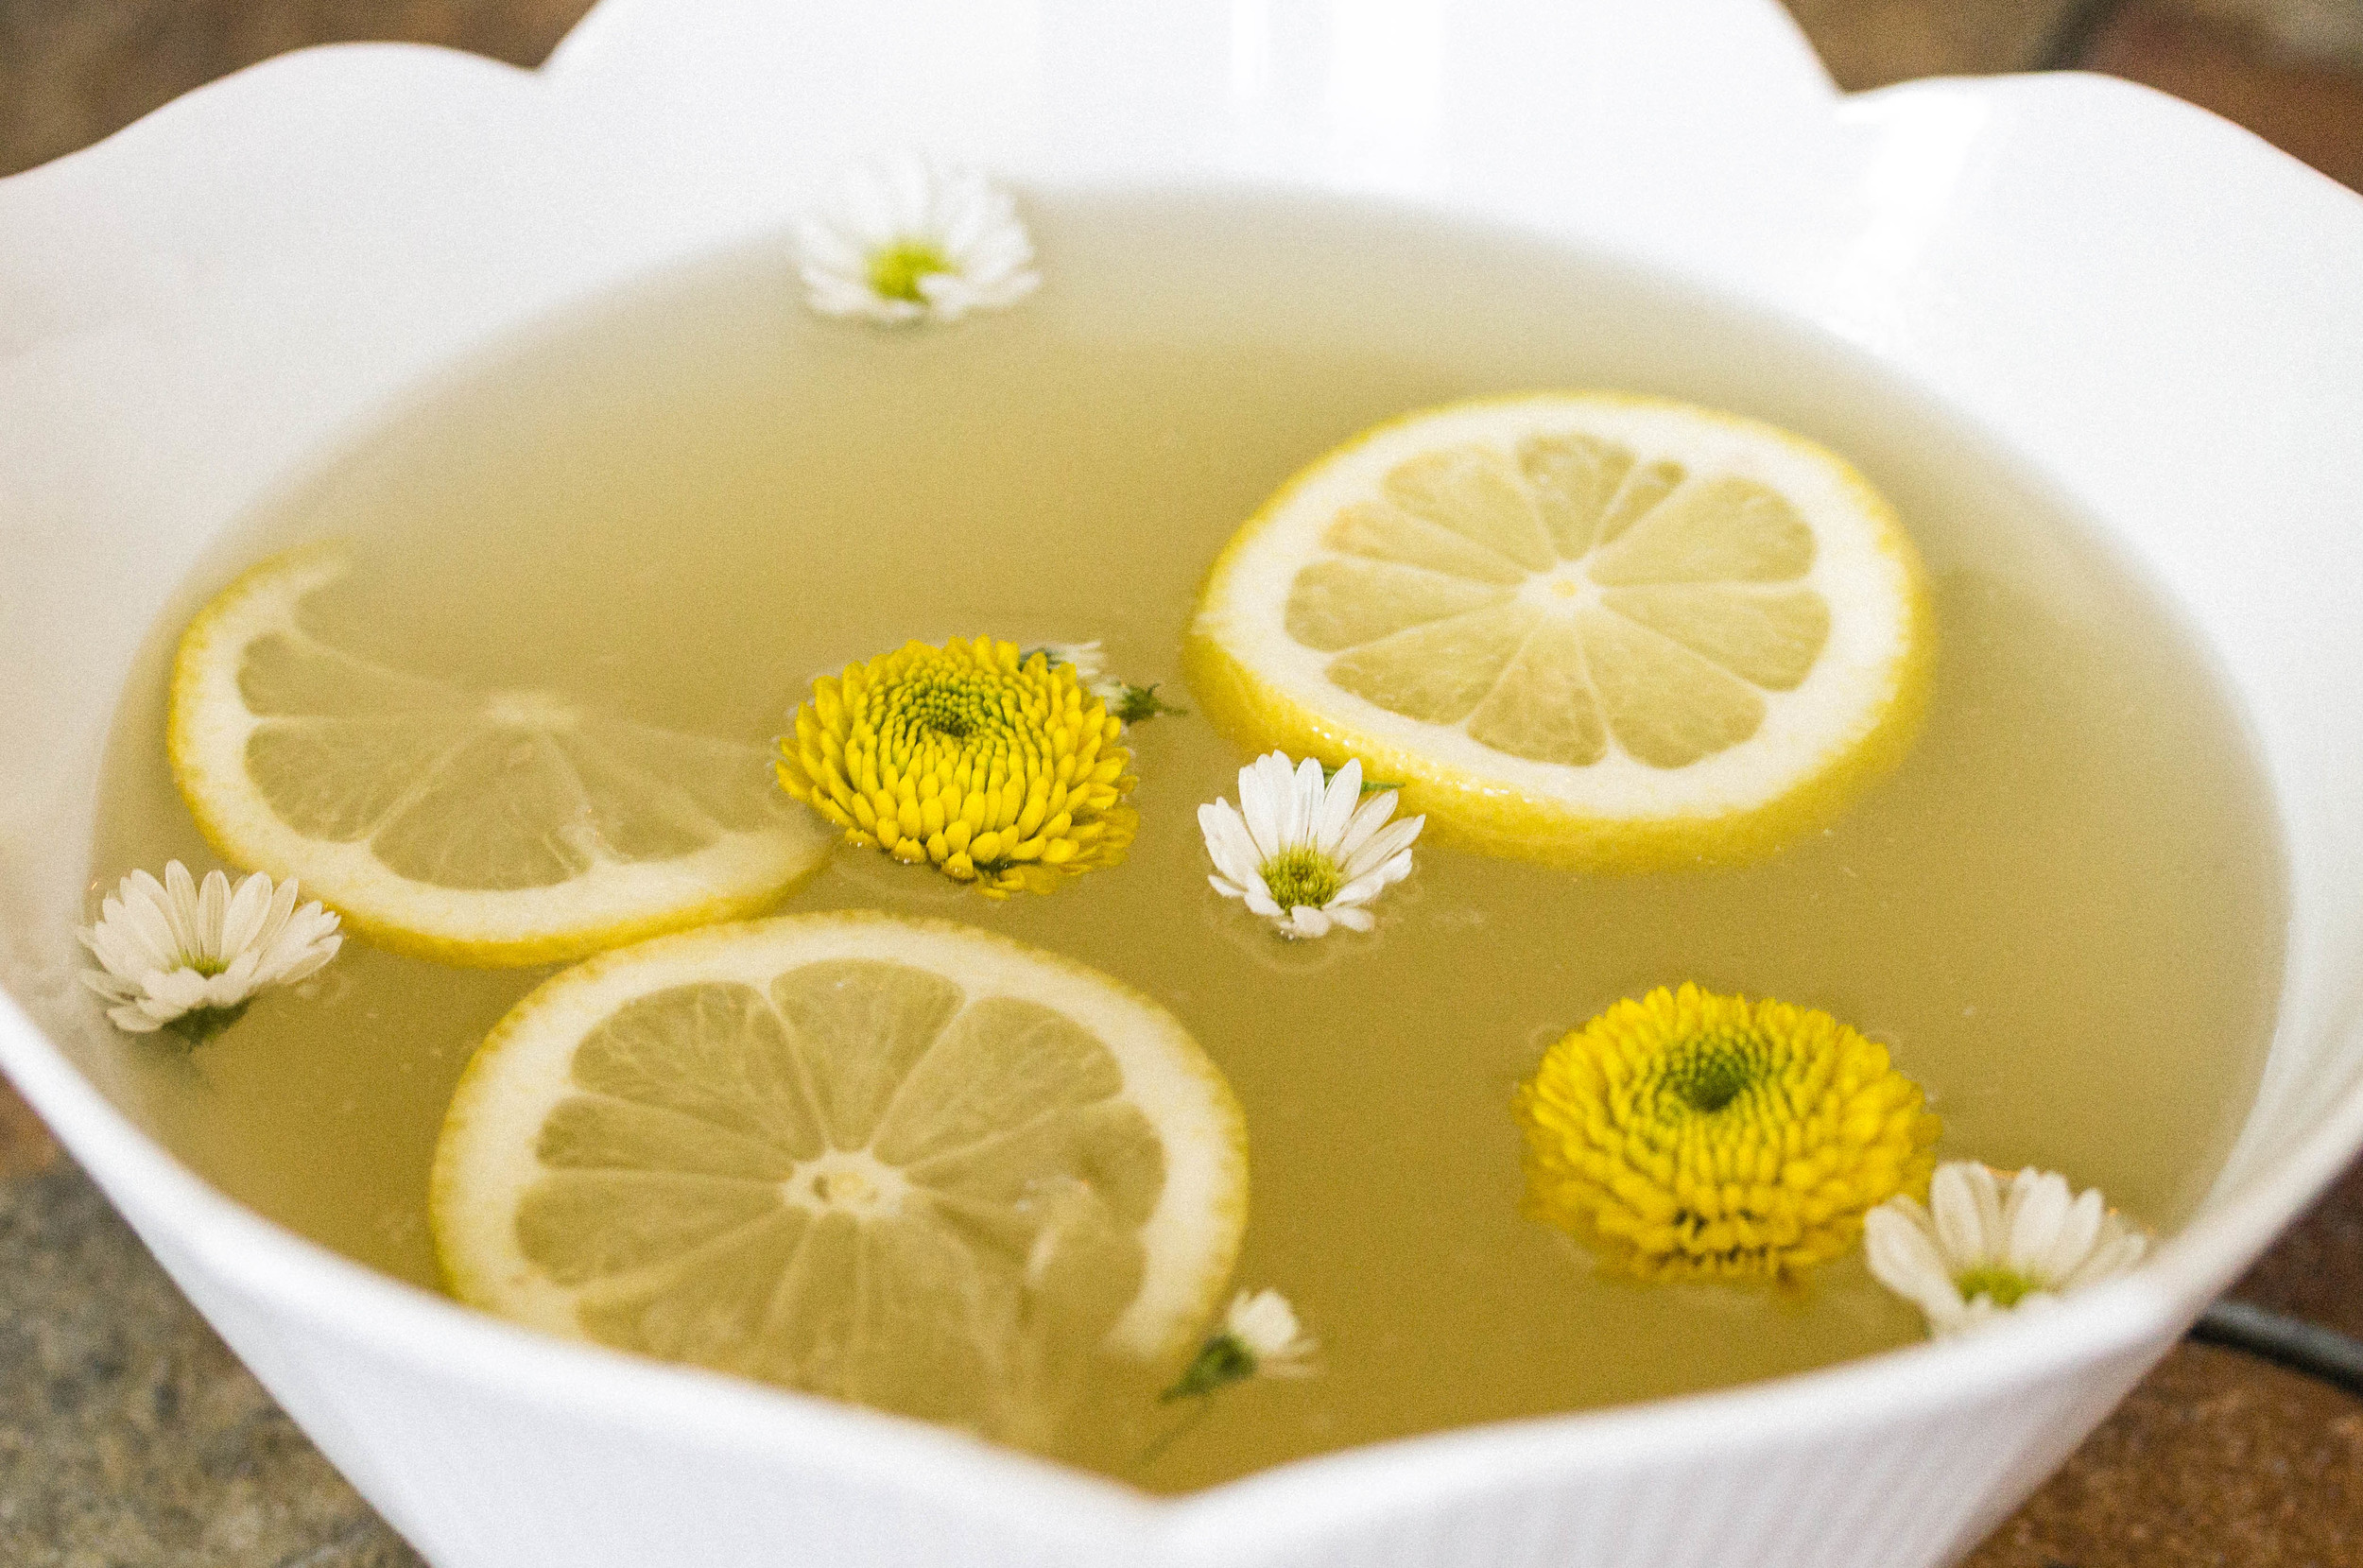 Serve broth with lemons and garnish with salt, pepper, and herbs to taste.